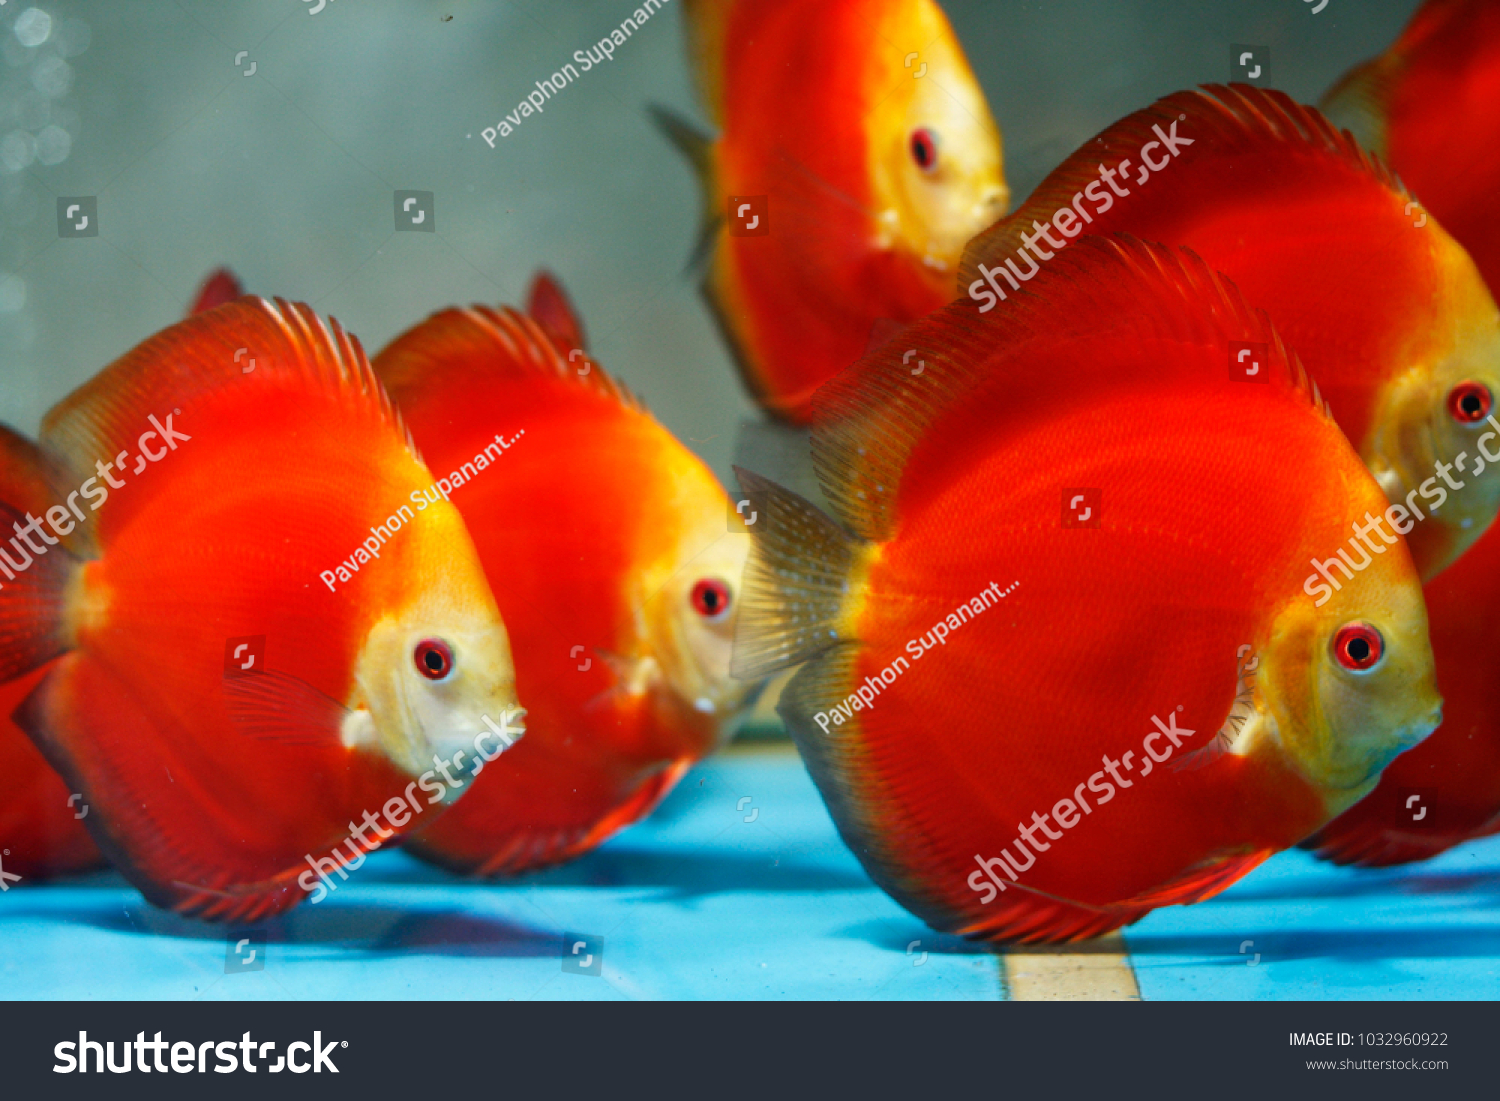 Red Melon Yellow Face Discus Stock Photo (Royalty Free) 1032960922 ...